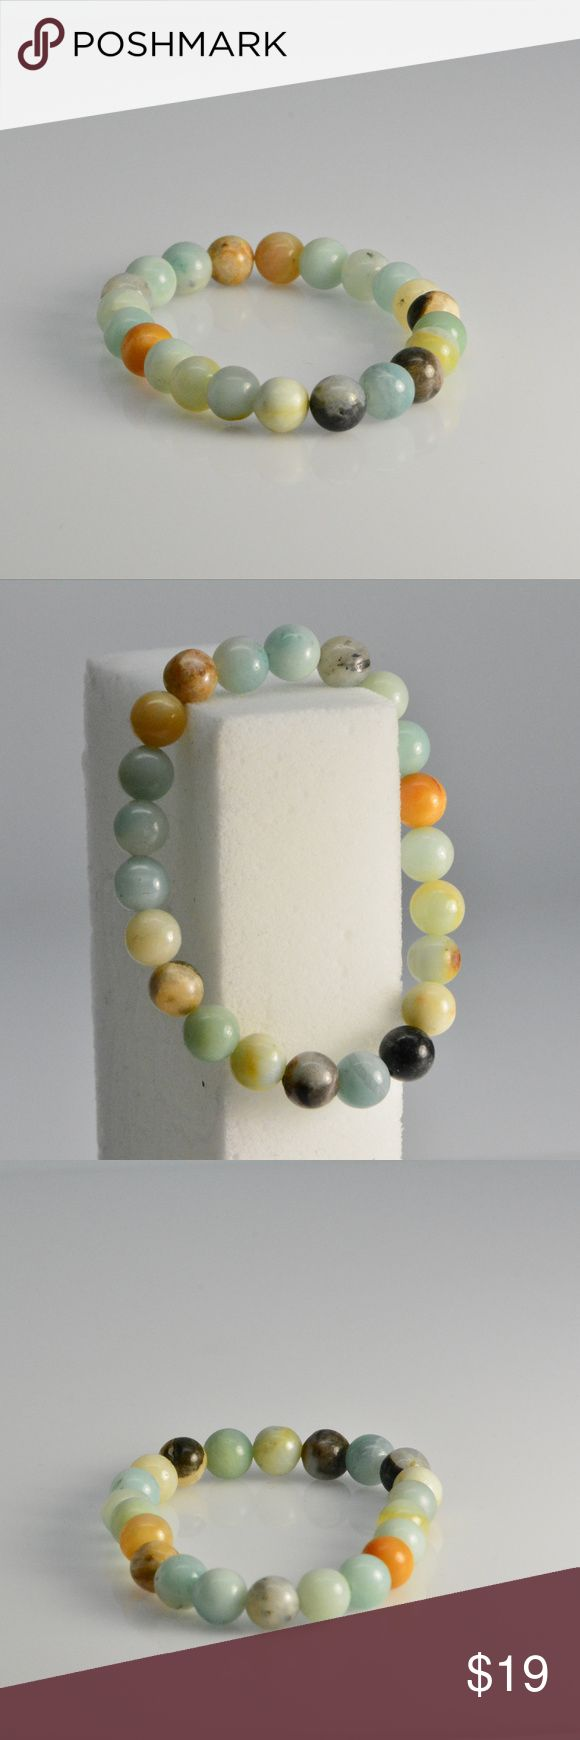 Multi color Amazonite bracelet - stretch bracelet Multi color Amazonite stretch bracelet using 8mm gemstone beads. Fits Small to large wrist sizes, These are natural Amazonite gemstones strung together with high quality stretch cord. Perfect for men and woman Vivi Fashion Jewelry Bracelets